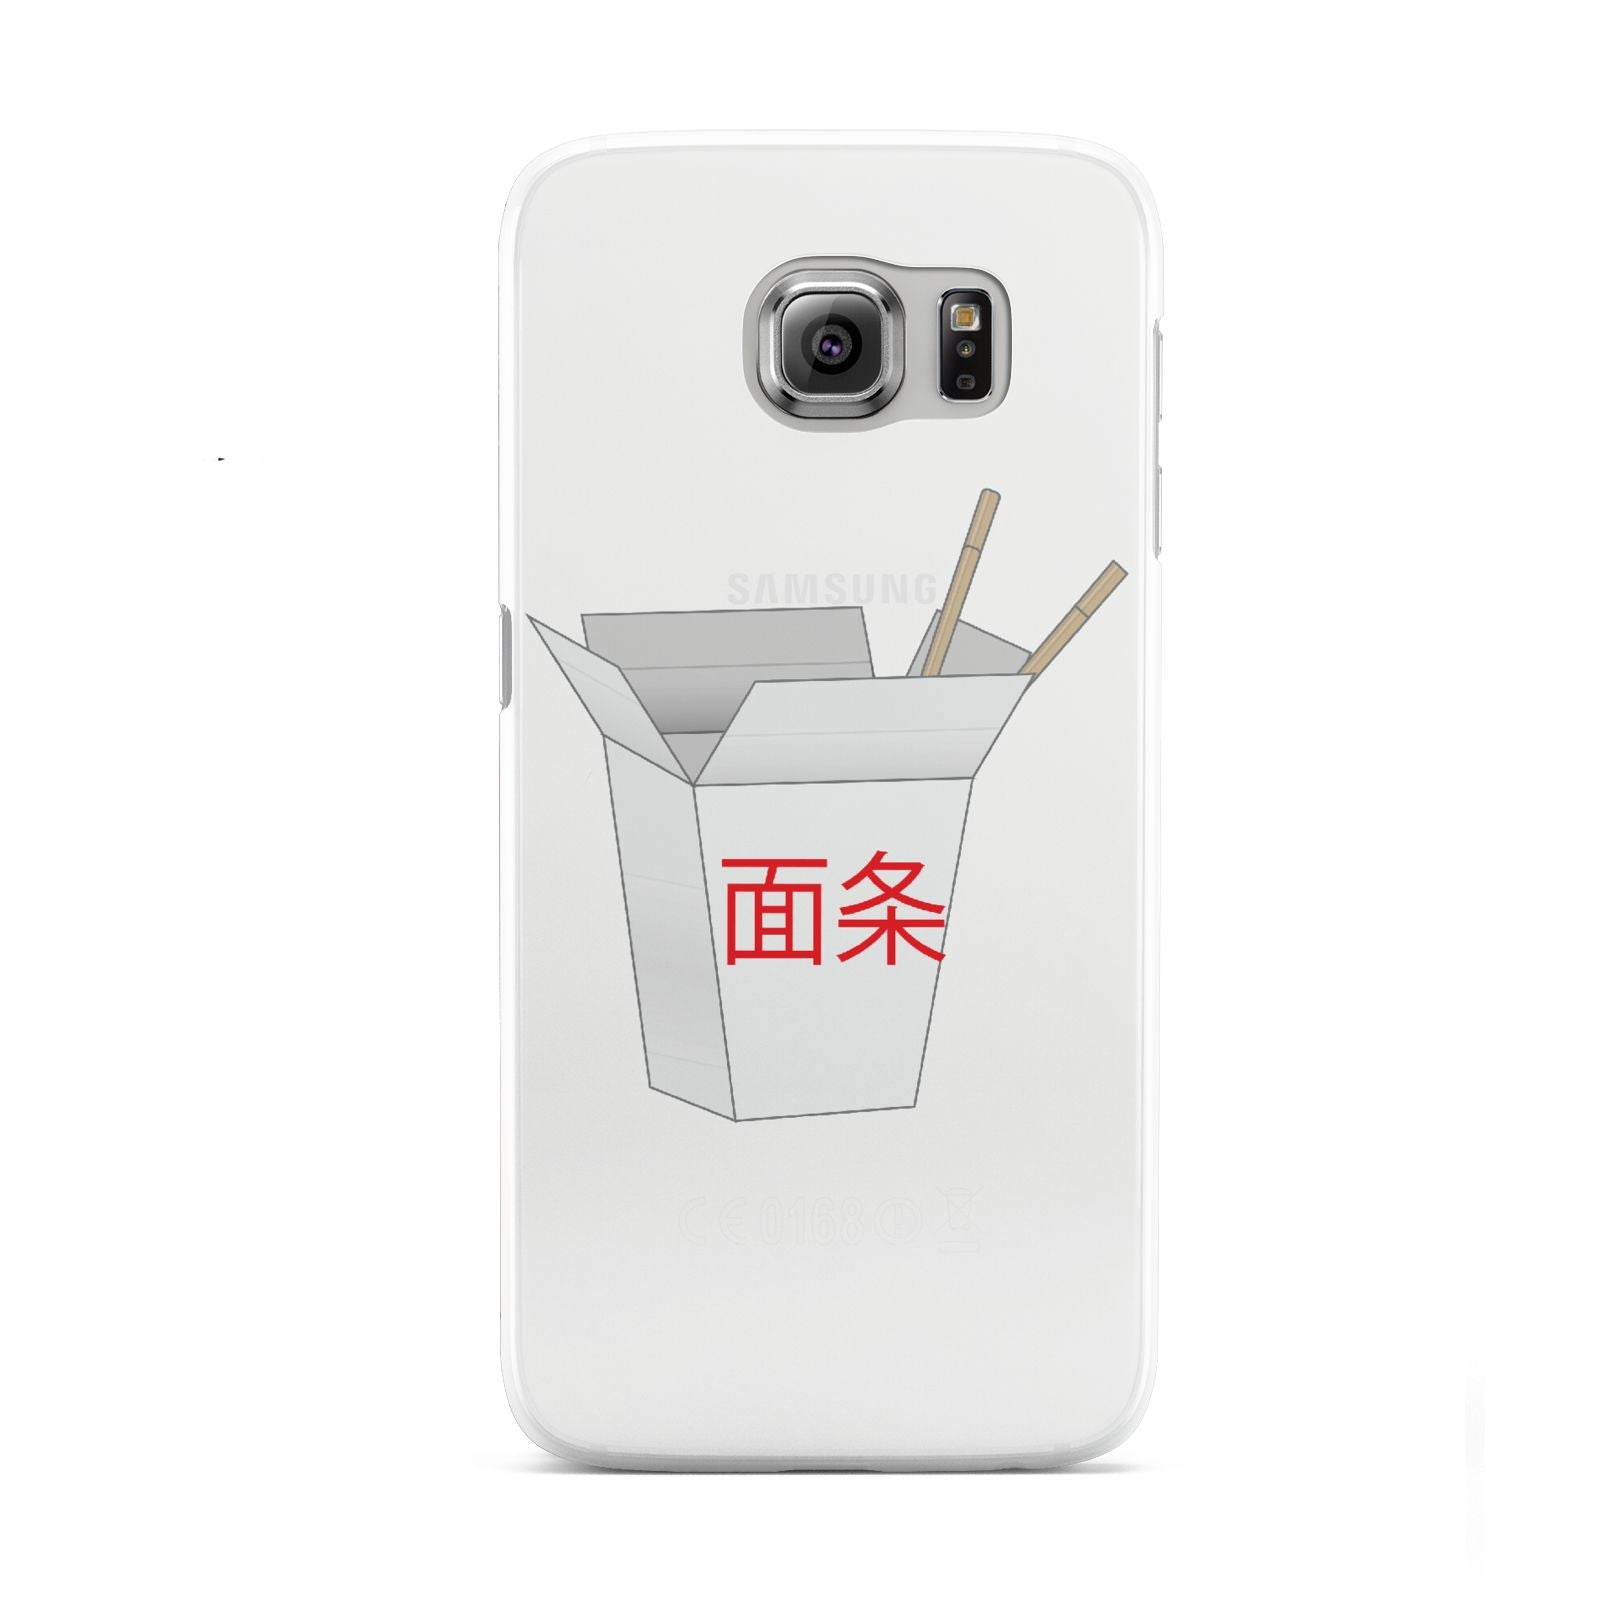 Chinese Takeaway Box Samsung Galaxy S6 Case